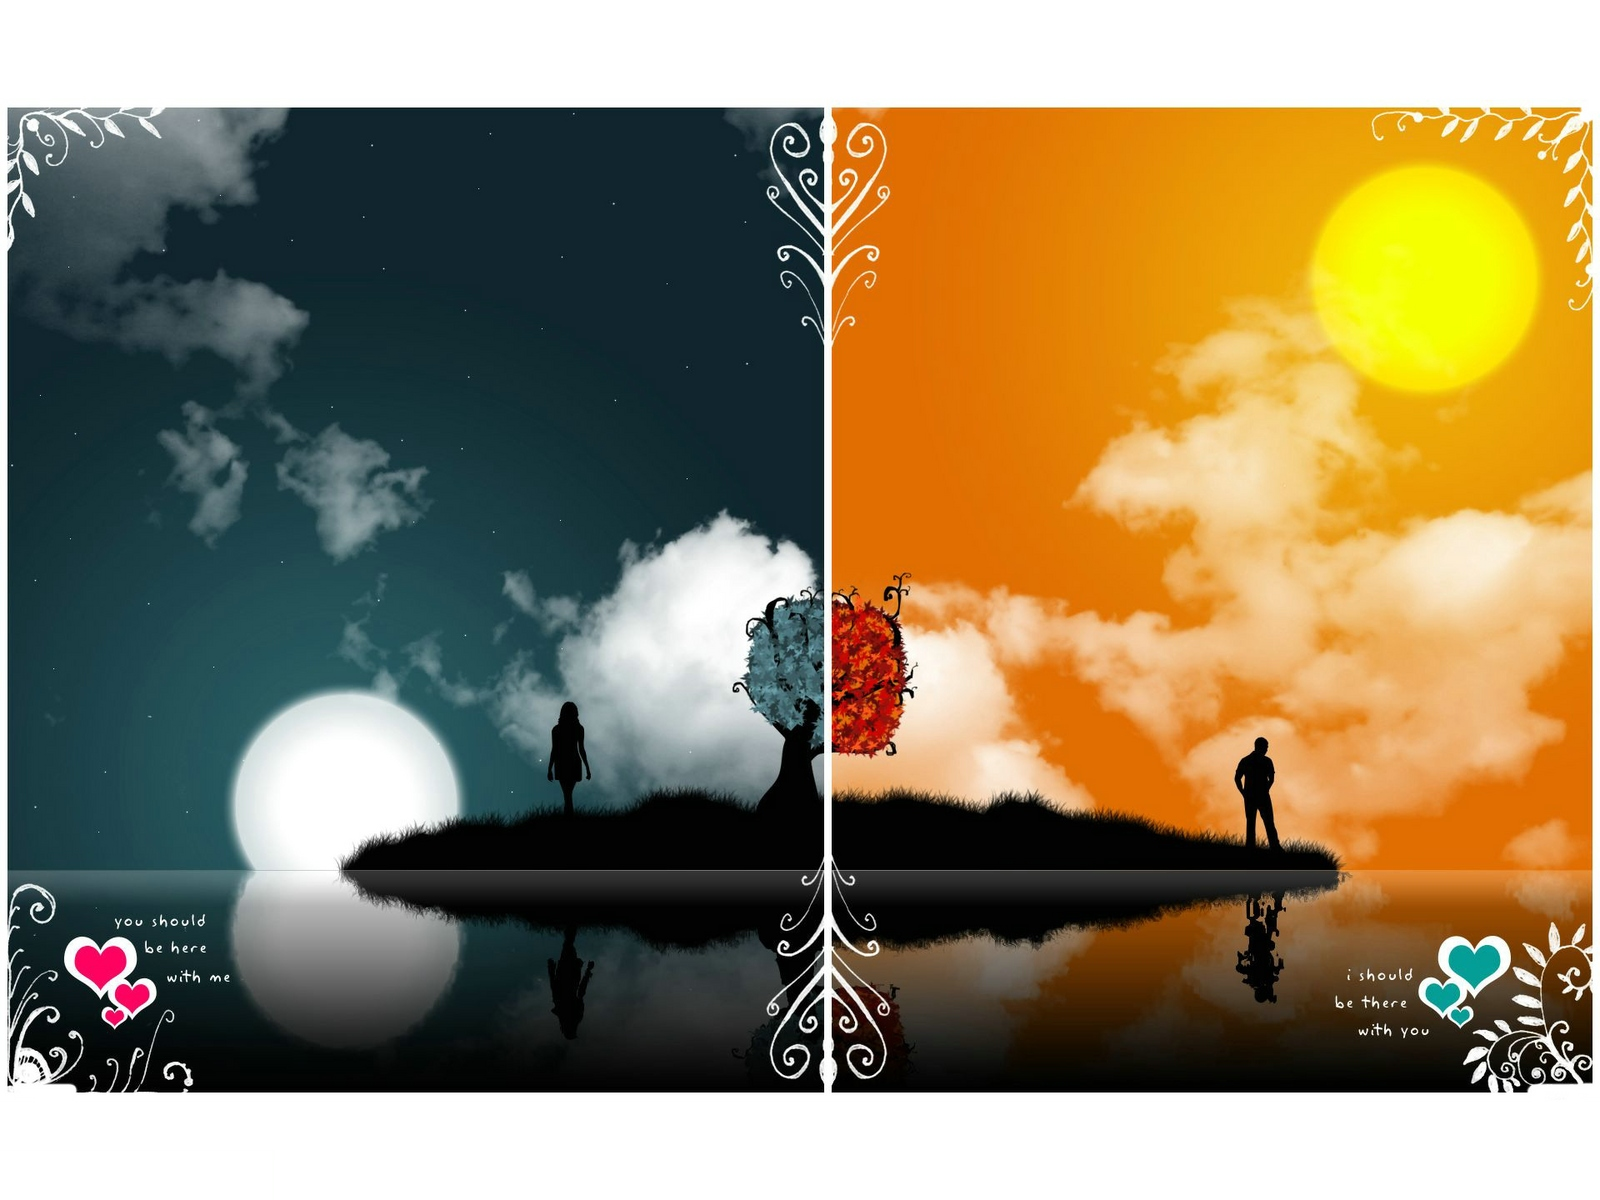 i love you aman wallpaper,games,technology,photography,graphic design